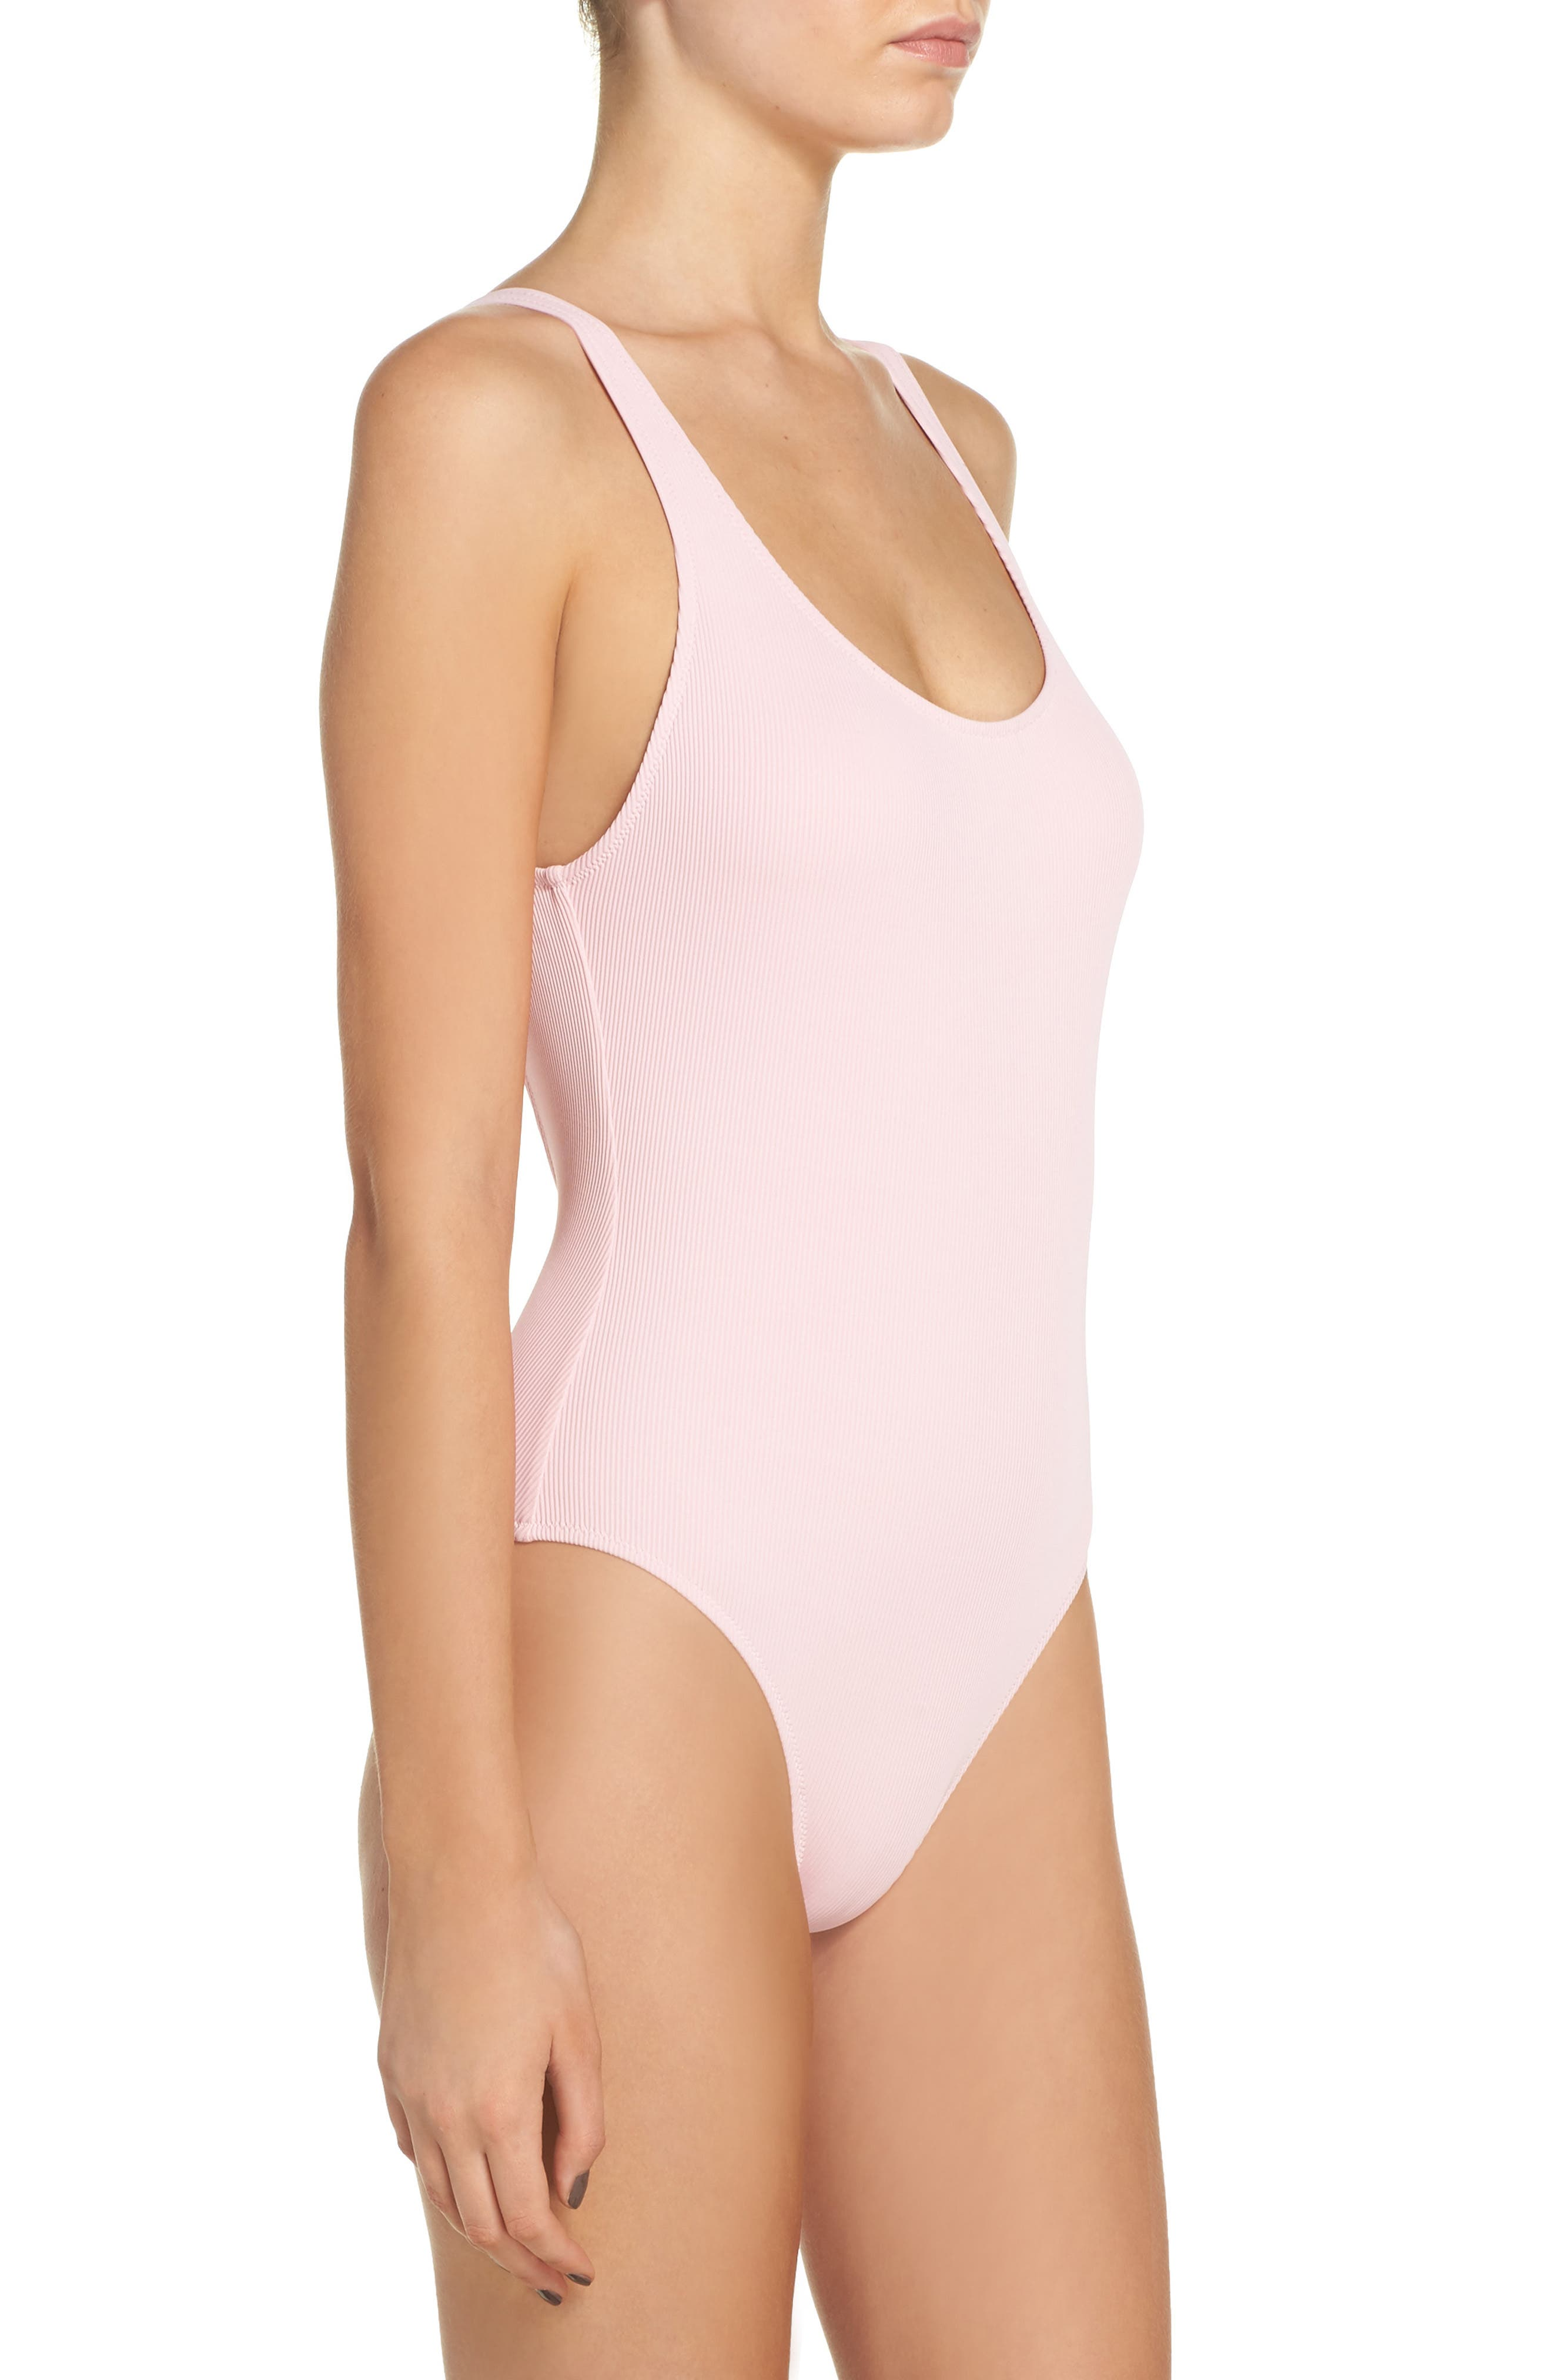 Anne Marie One-Piece Swimsuit,                             Alternate thumbnail 3, color,                             650